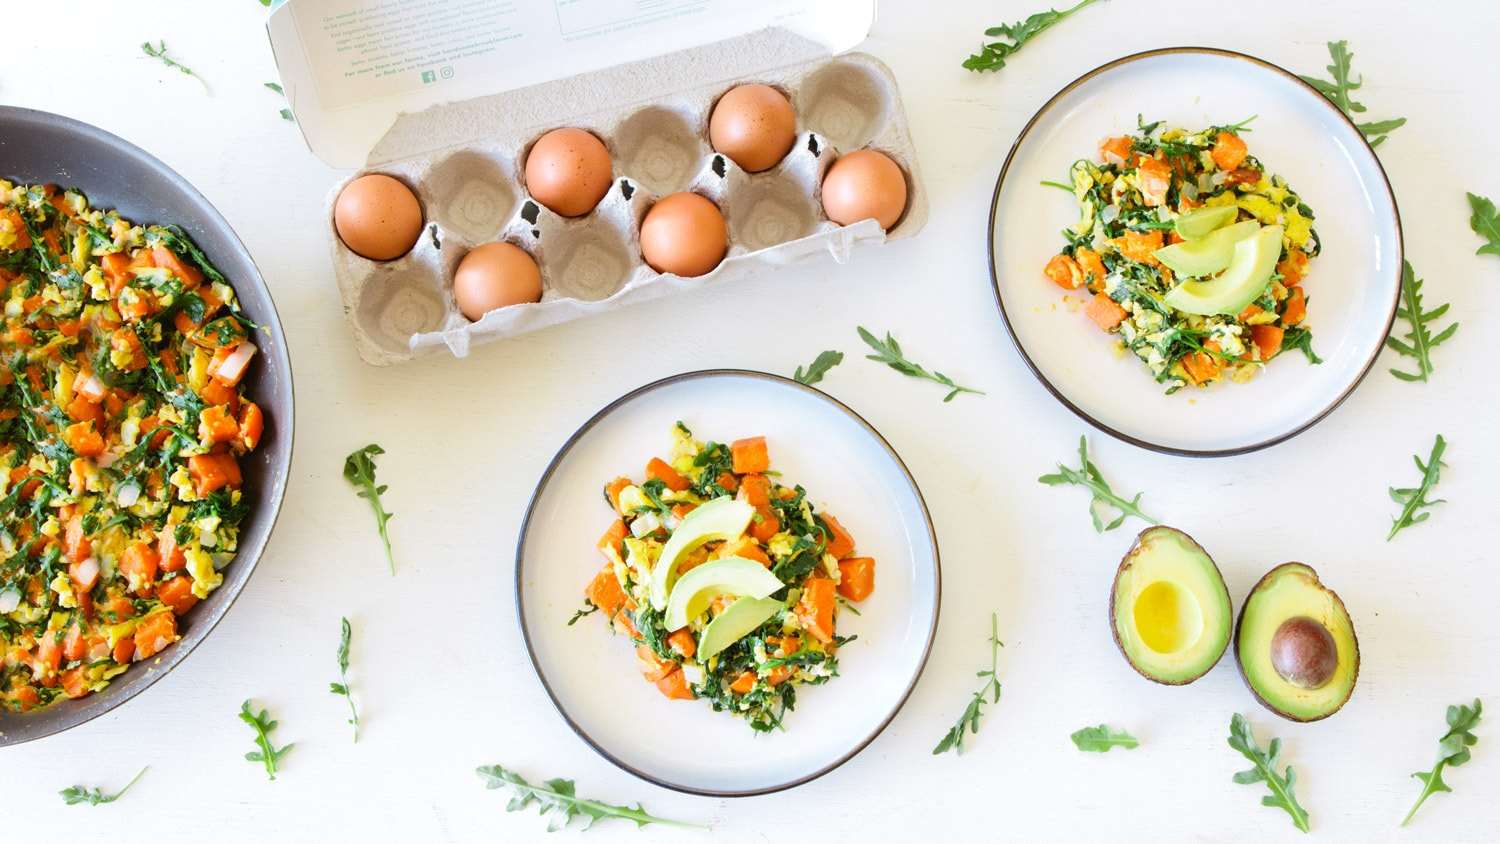 Superfood Scramble Recipe: Supercharge Your Breakfast